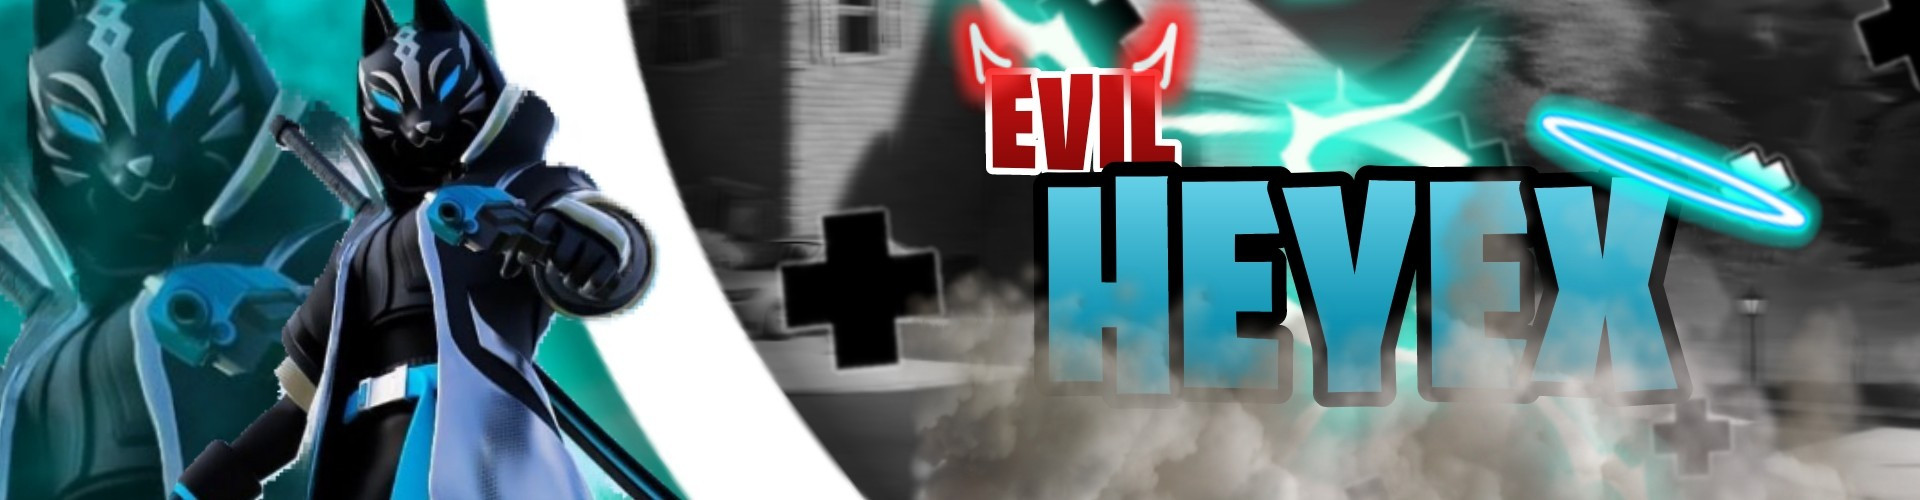 Banner for @evilexx 😈 At 20 likes I will release the free template😇 #fortnite #freetemplate #banner #fortnitebanner #evil #evilrc #EVILONTOP